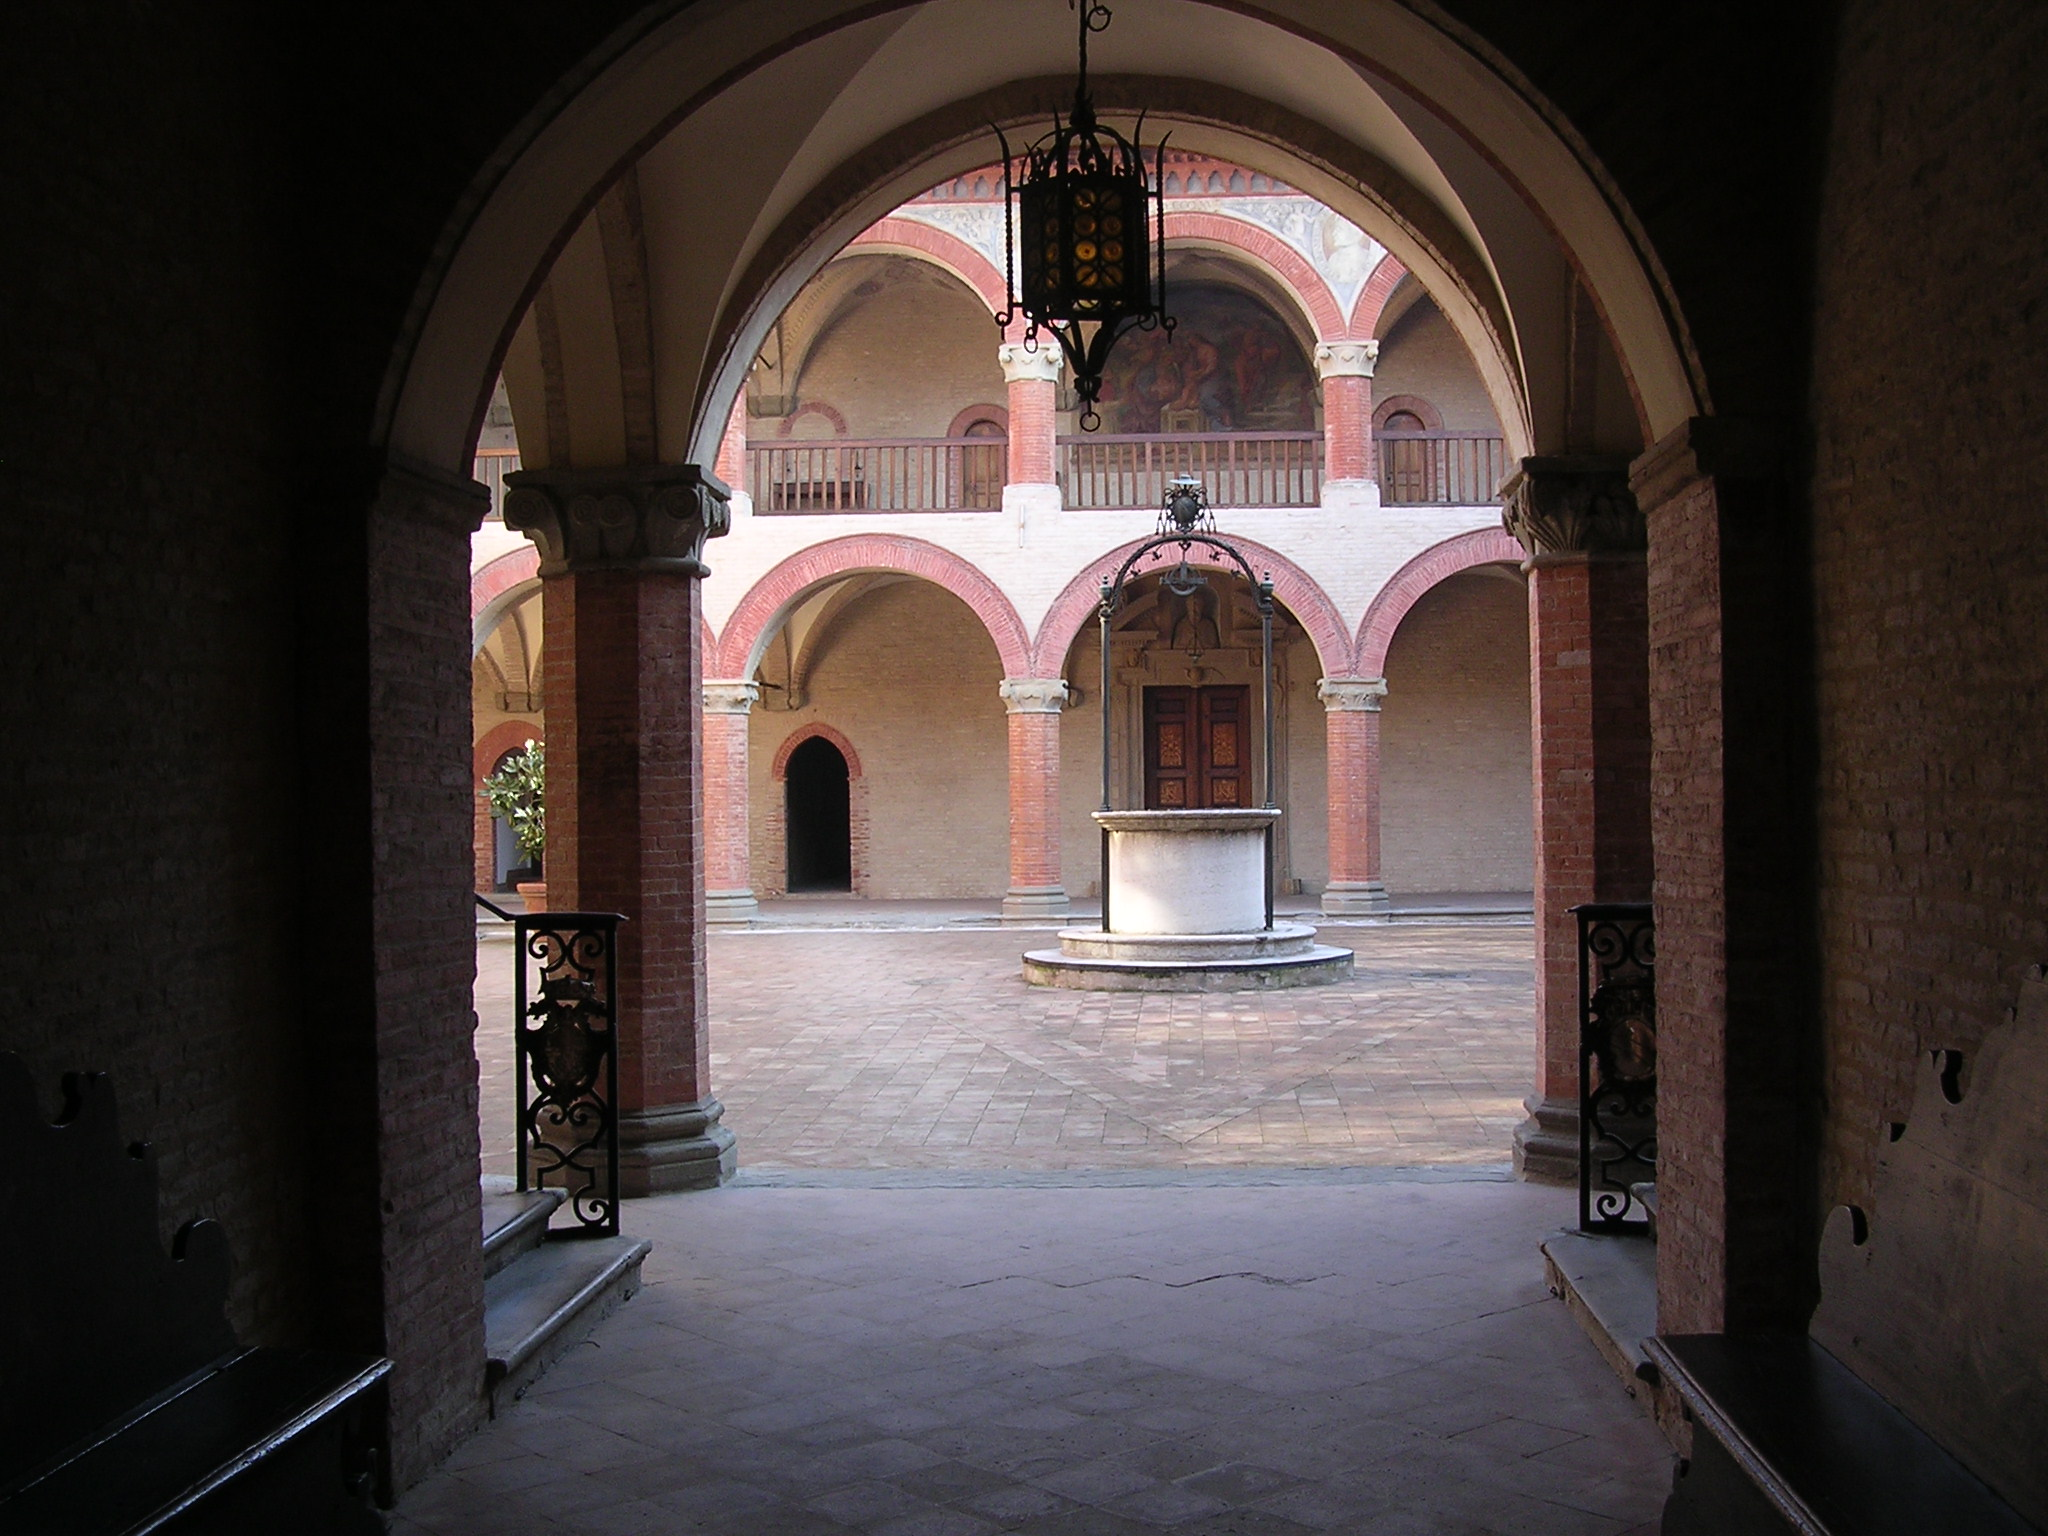 The Collegio di Spagna, a historic university college, originally founded to support Spanish students in Bologna, Italy.